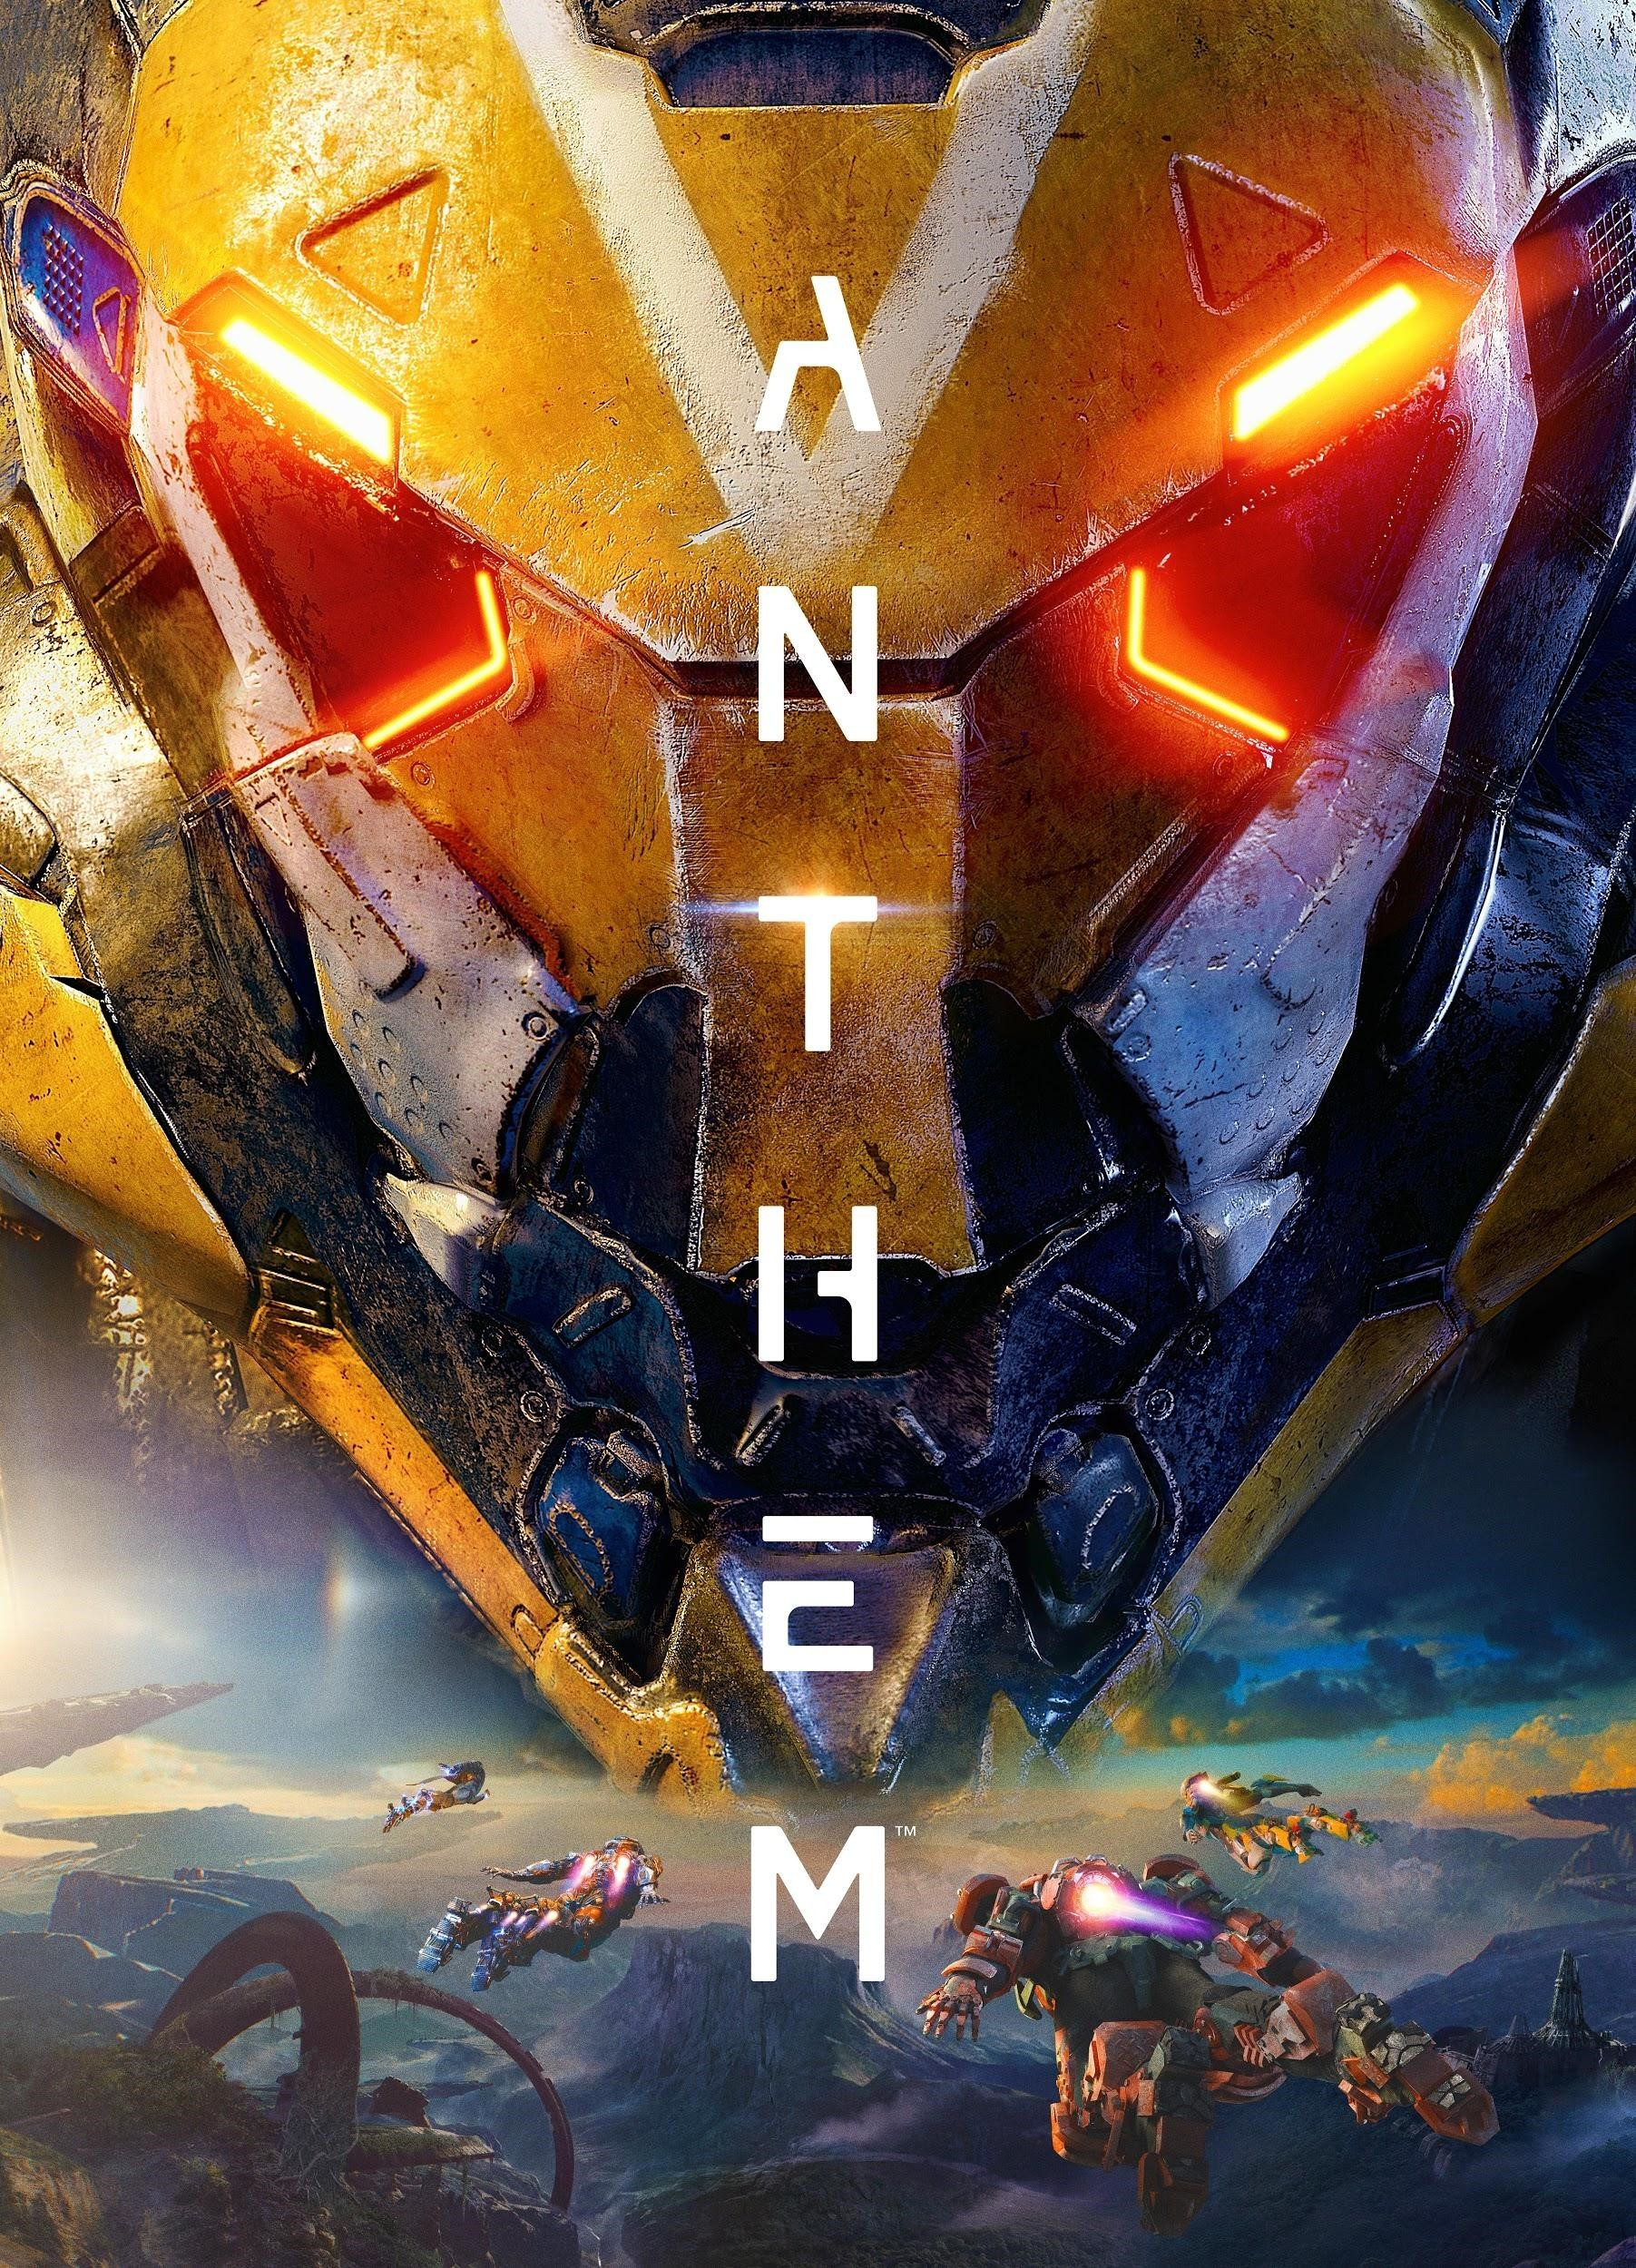 Triumph as One in Anthem, Launching February 22nd 2019